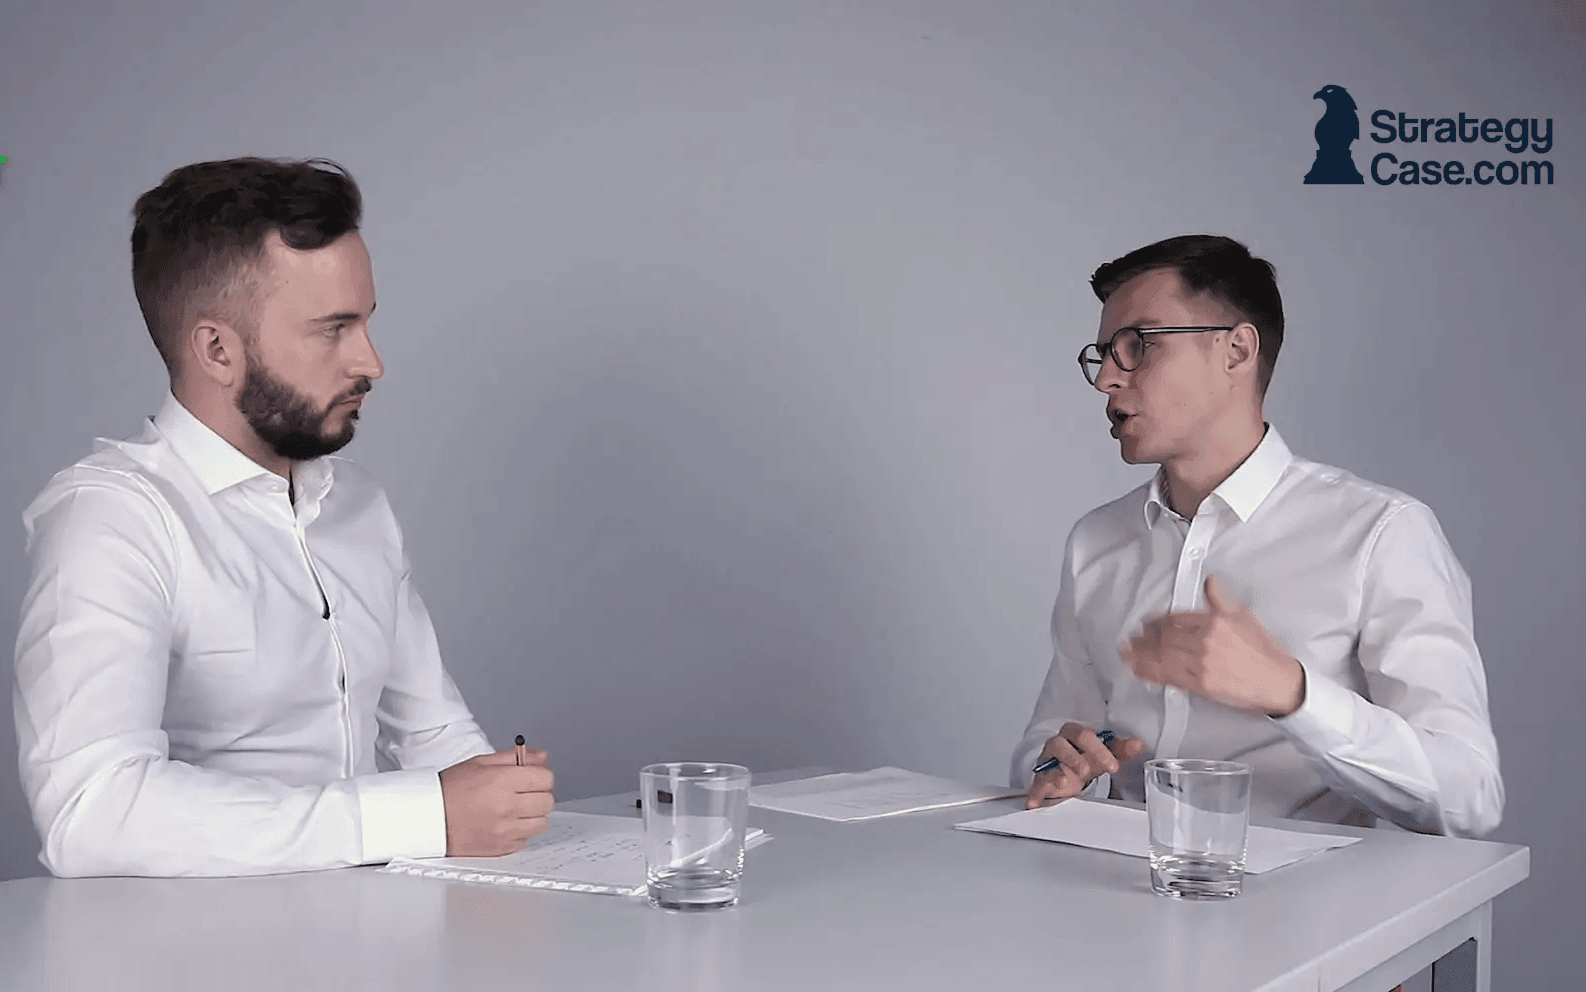 the image shows how a mckinsey interview is conducted